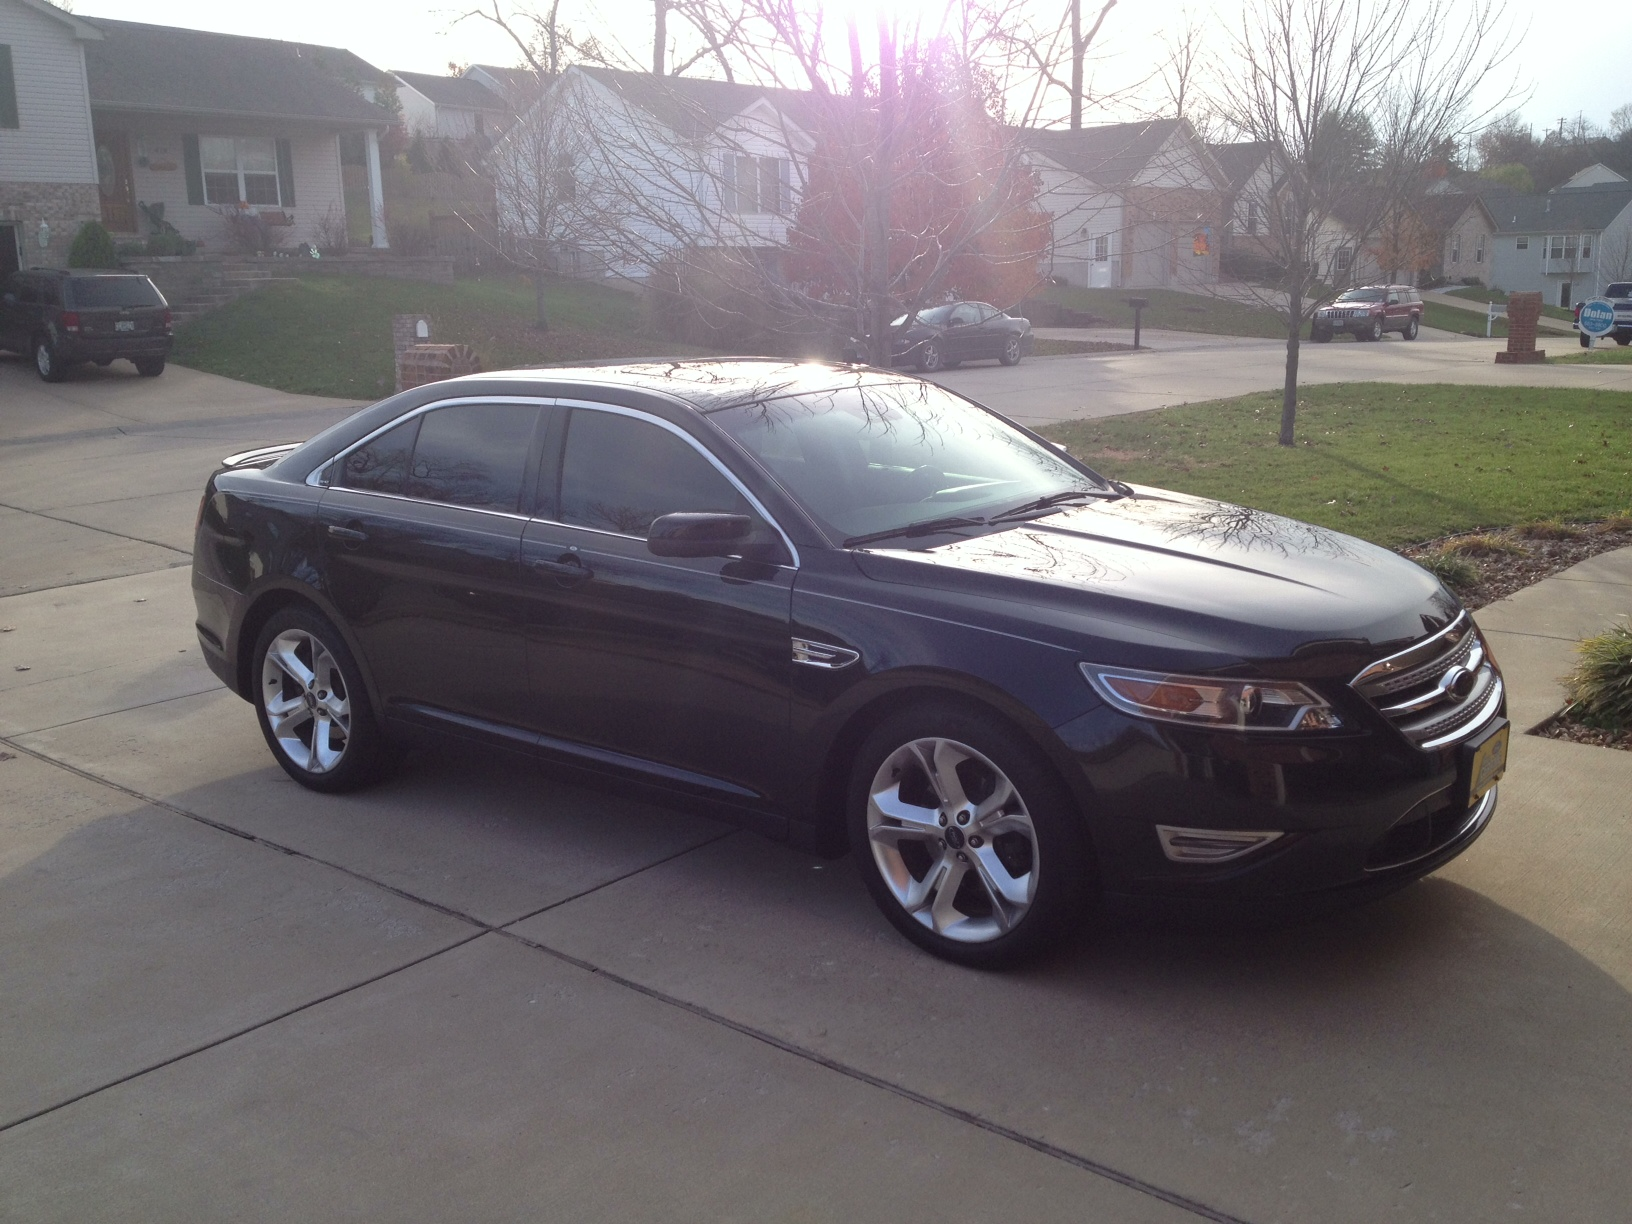 2010 Black Ford Taurus SHO picture, mods, upgrades